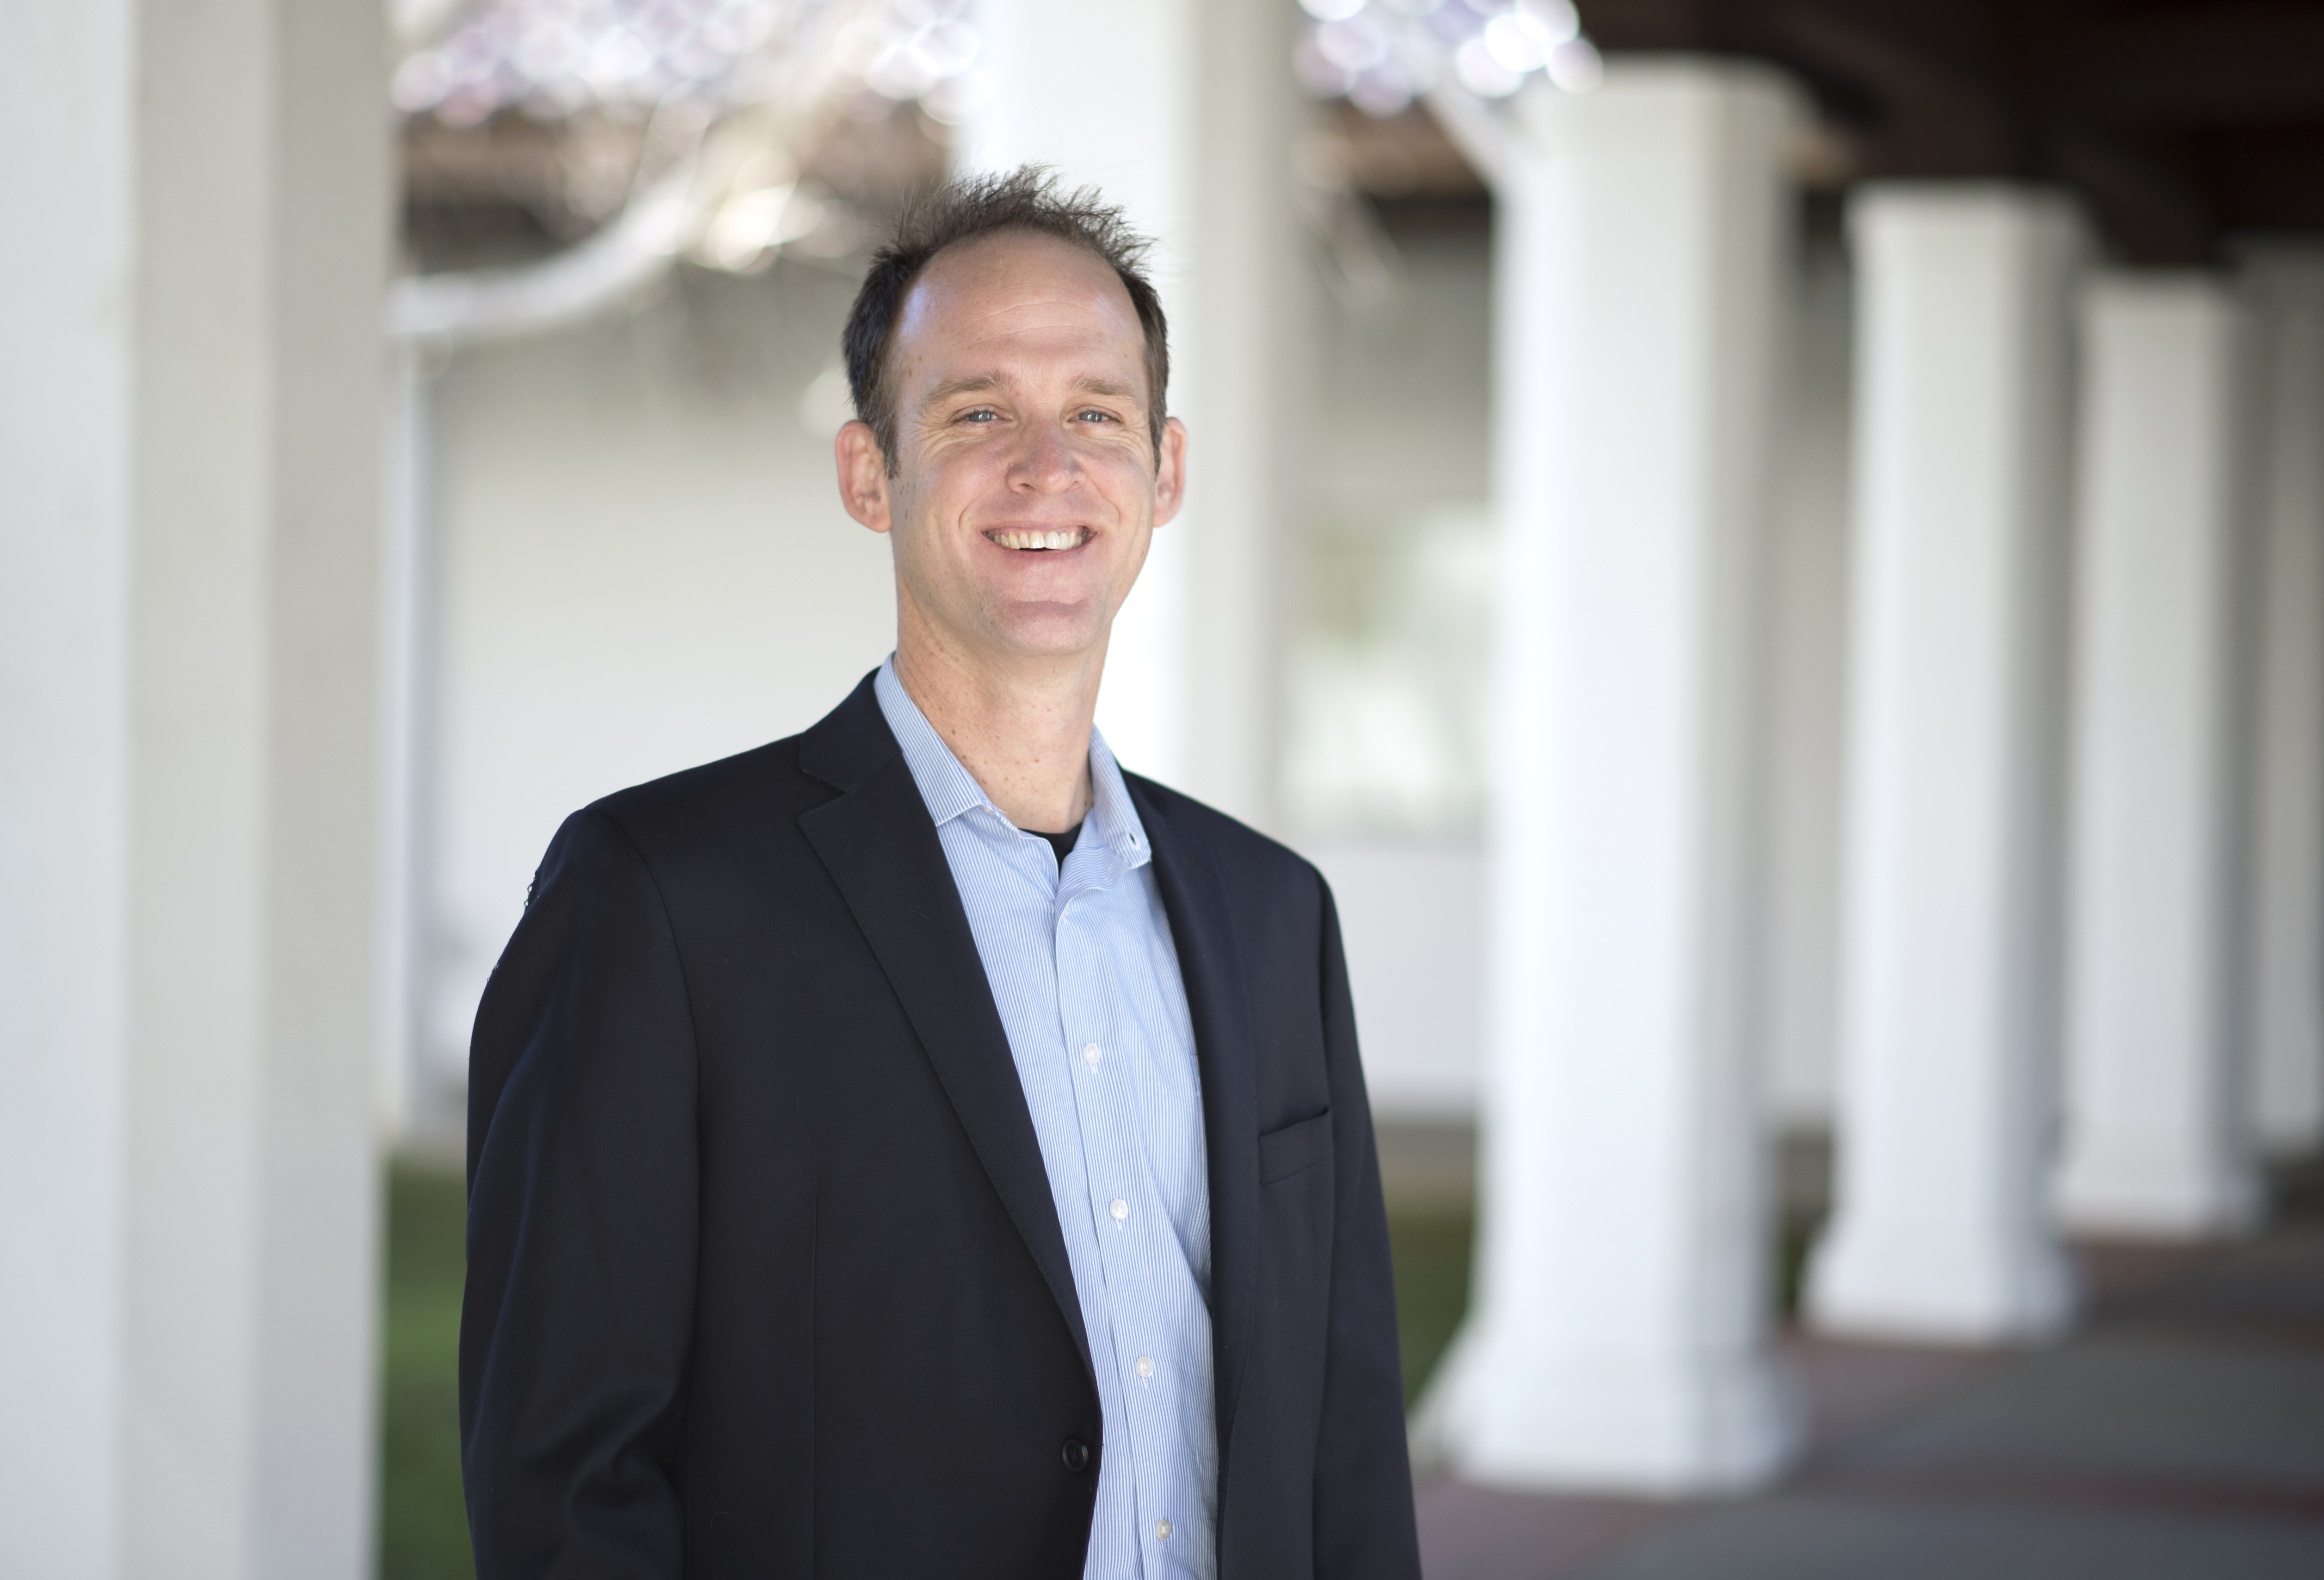 Saint Mary's College of California named Corey Cook PhD as the College's new Vice Provost for Academic Programs and Planning on July 1, 2019.